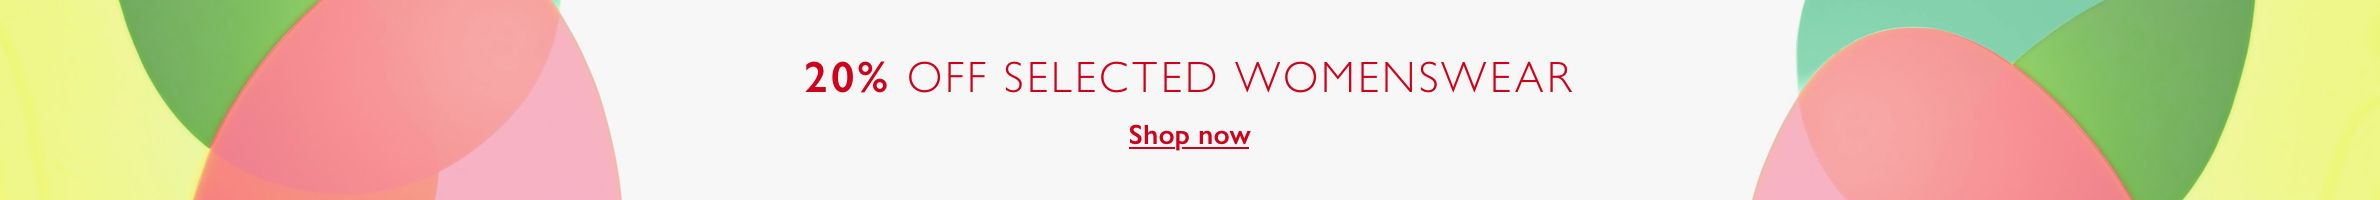 76f1dcf88b Womenswear Easter Offers